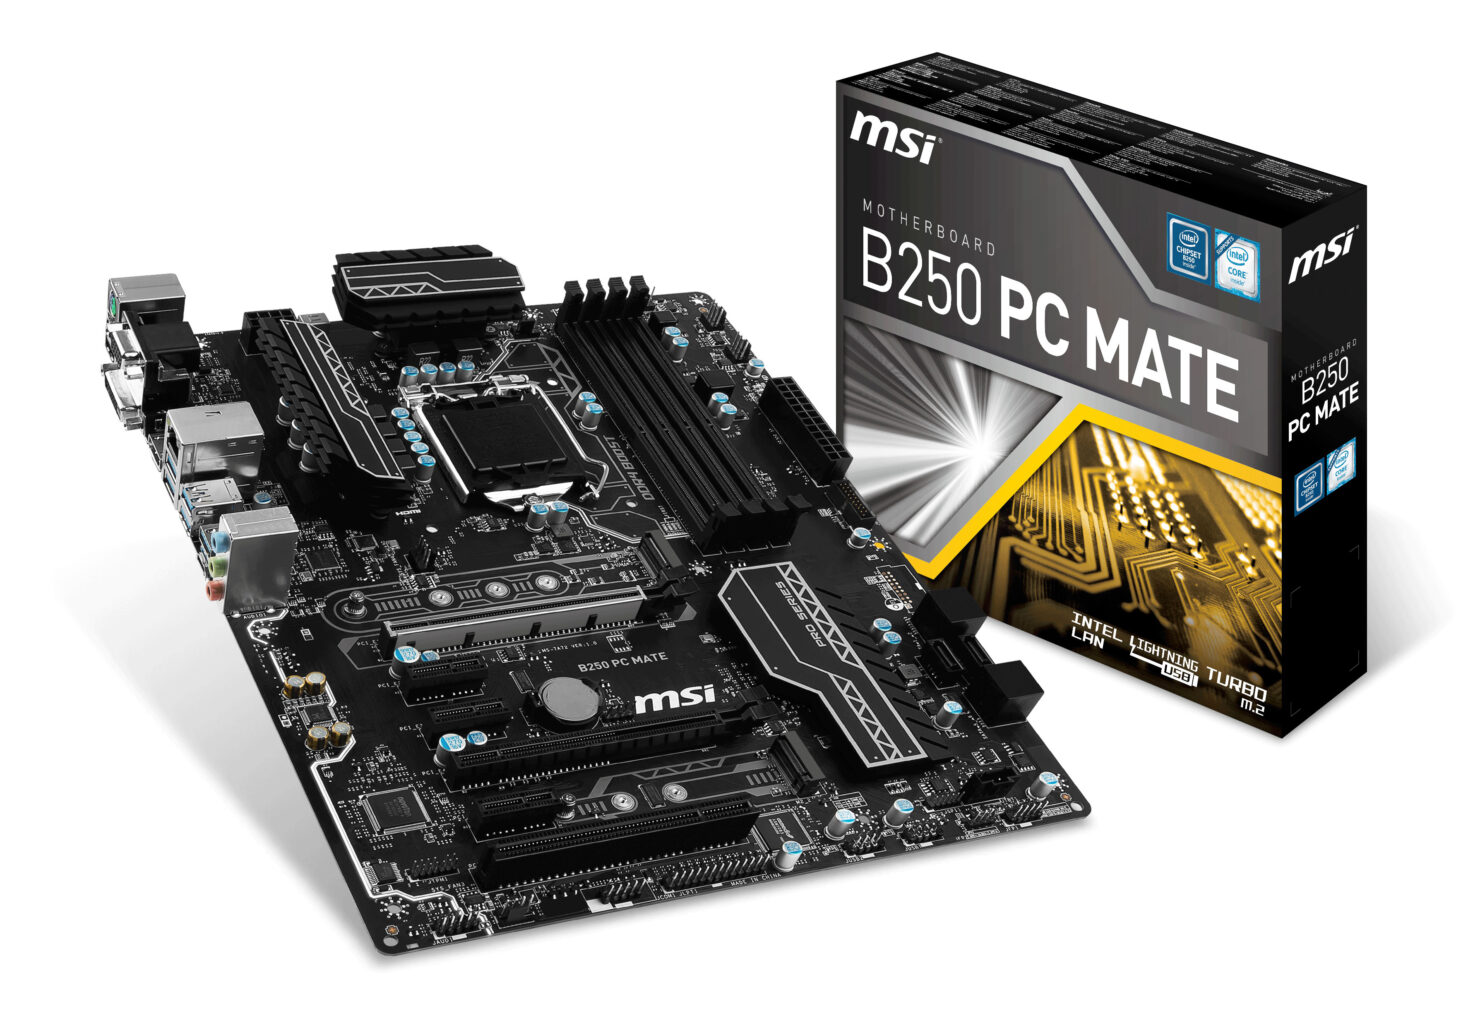 msi-b250_pc_mate-product_picture-box